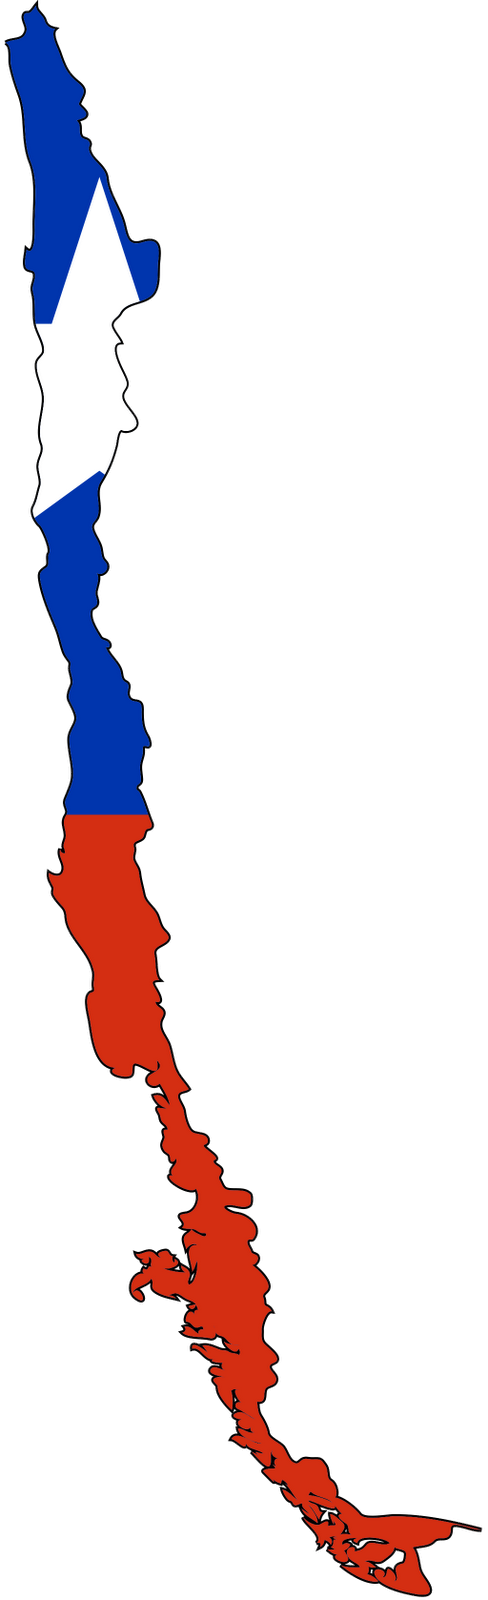 Chile Flag Clipart HD 19349